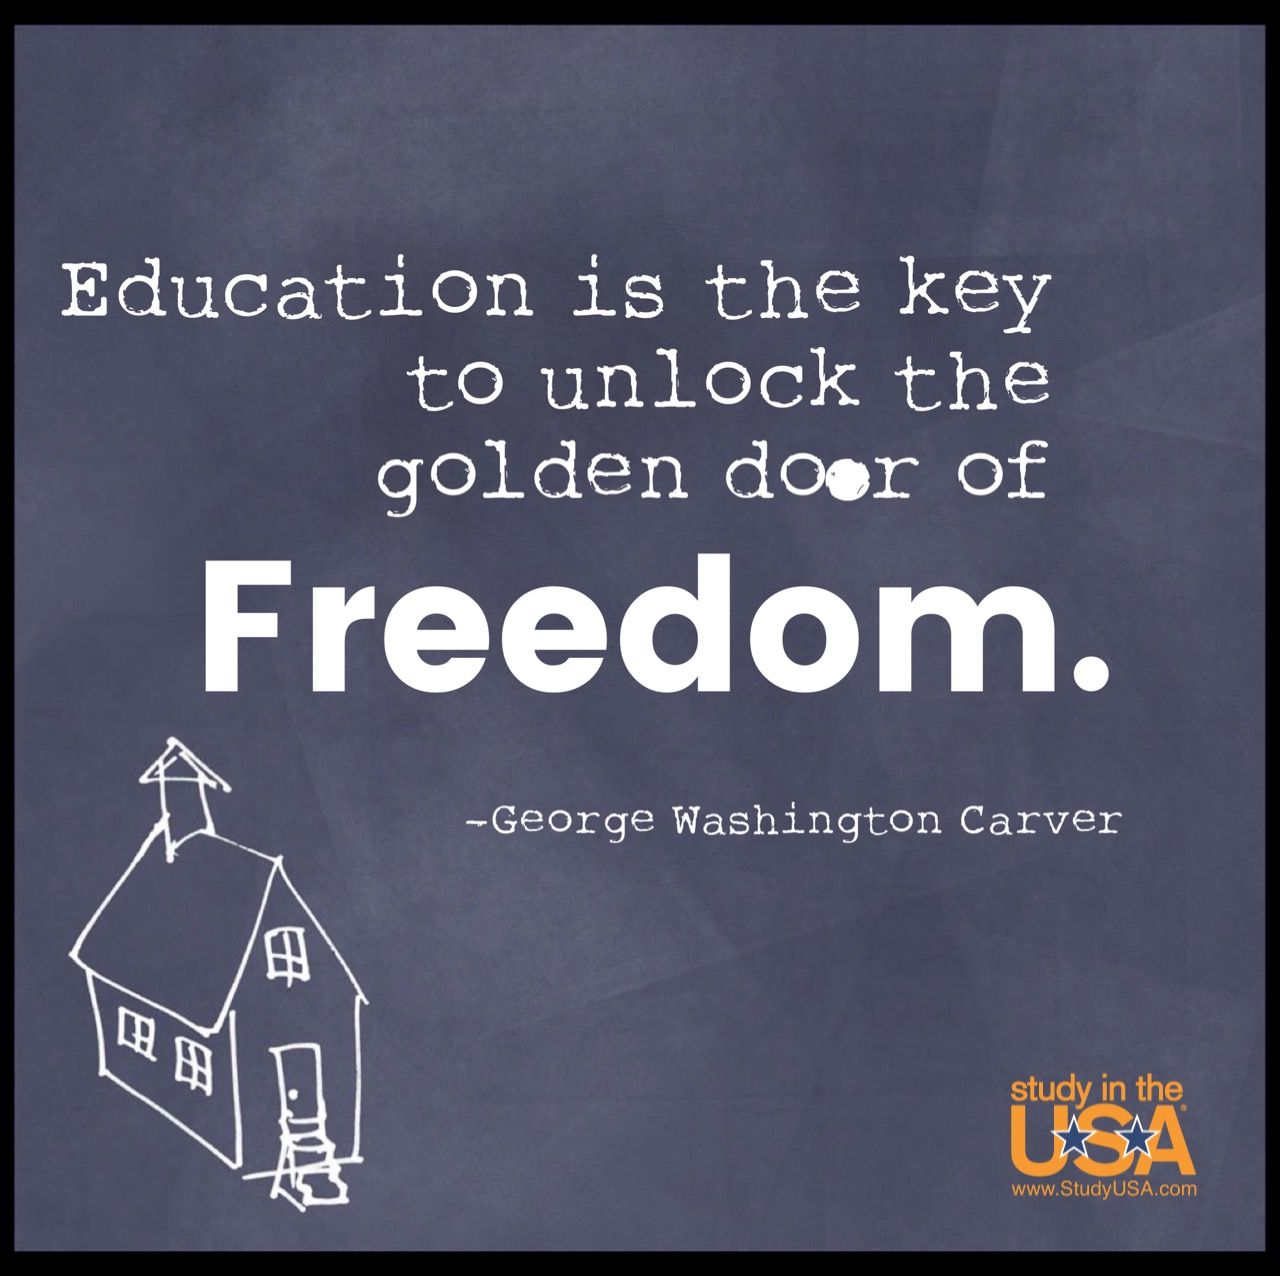 George Washington Carver Quotes Education Is The Key To Unlock The Golden Door Of Freedom~George .